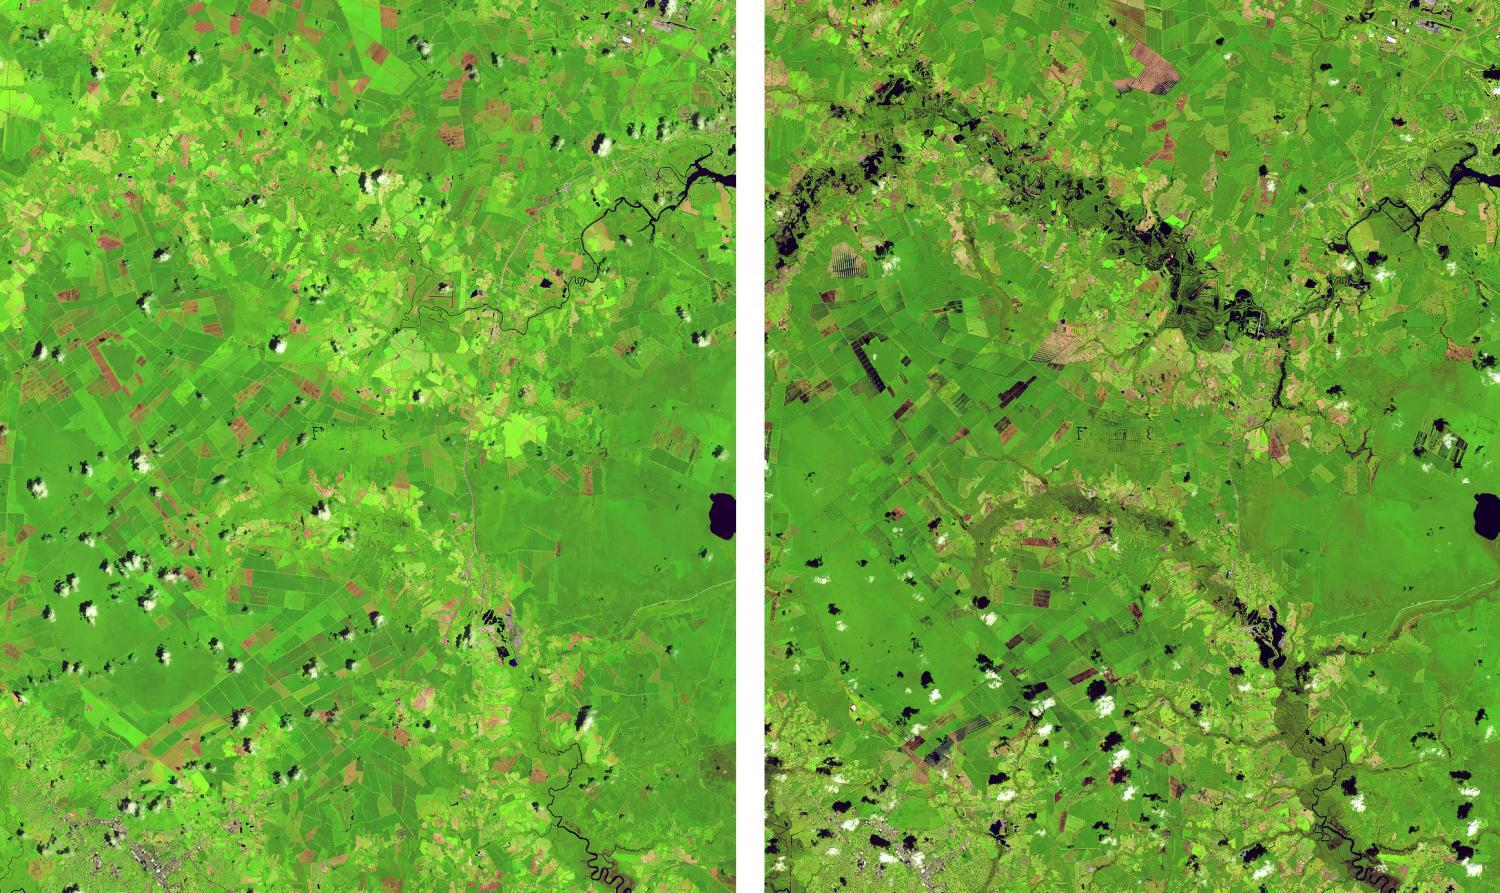 Satellite image of Trent River from July 2017 and September 2018 after flooding